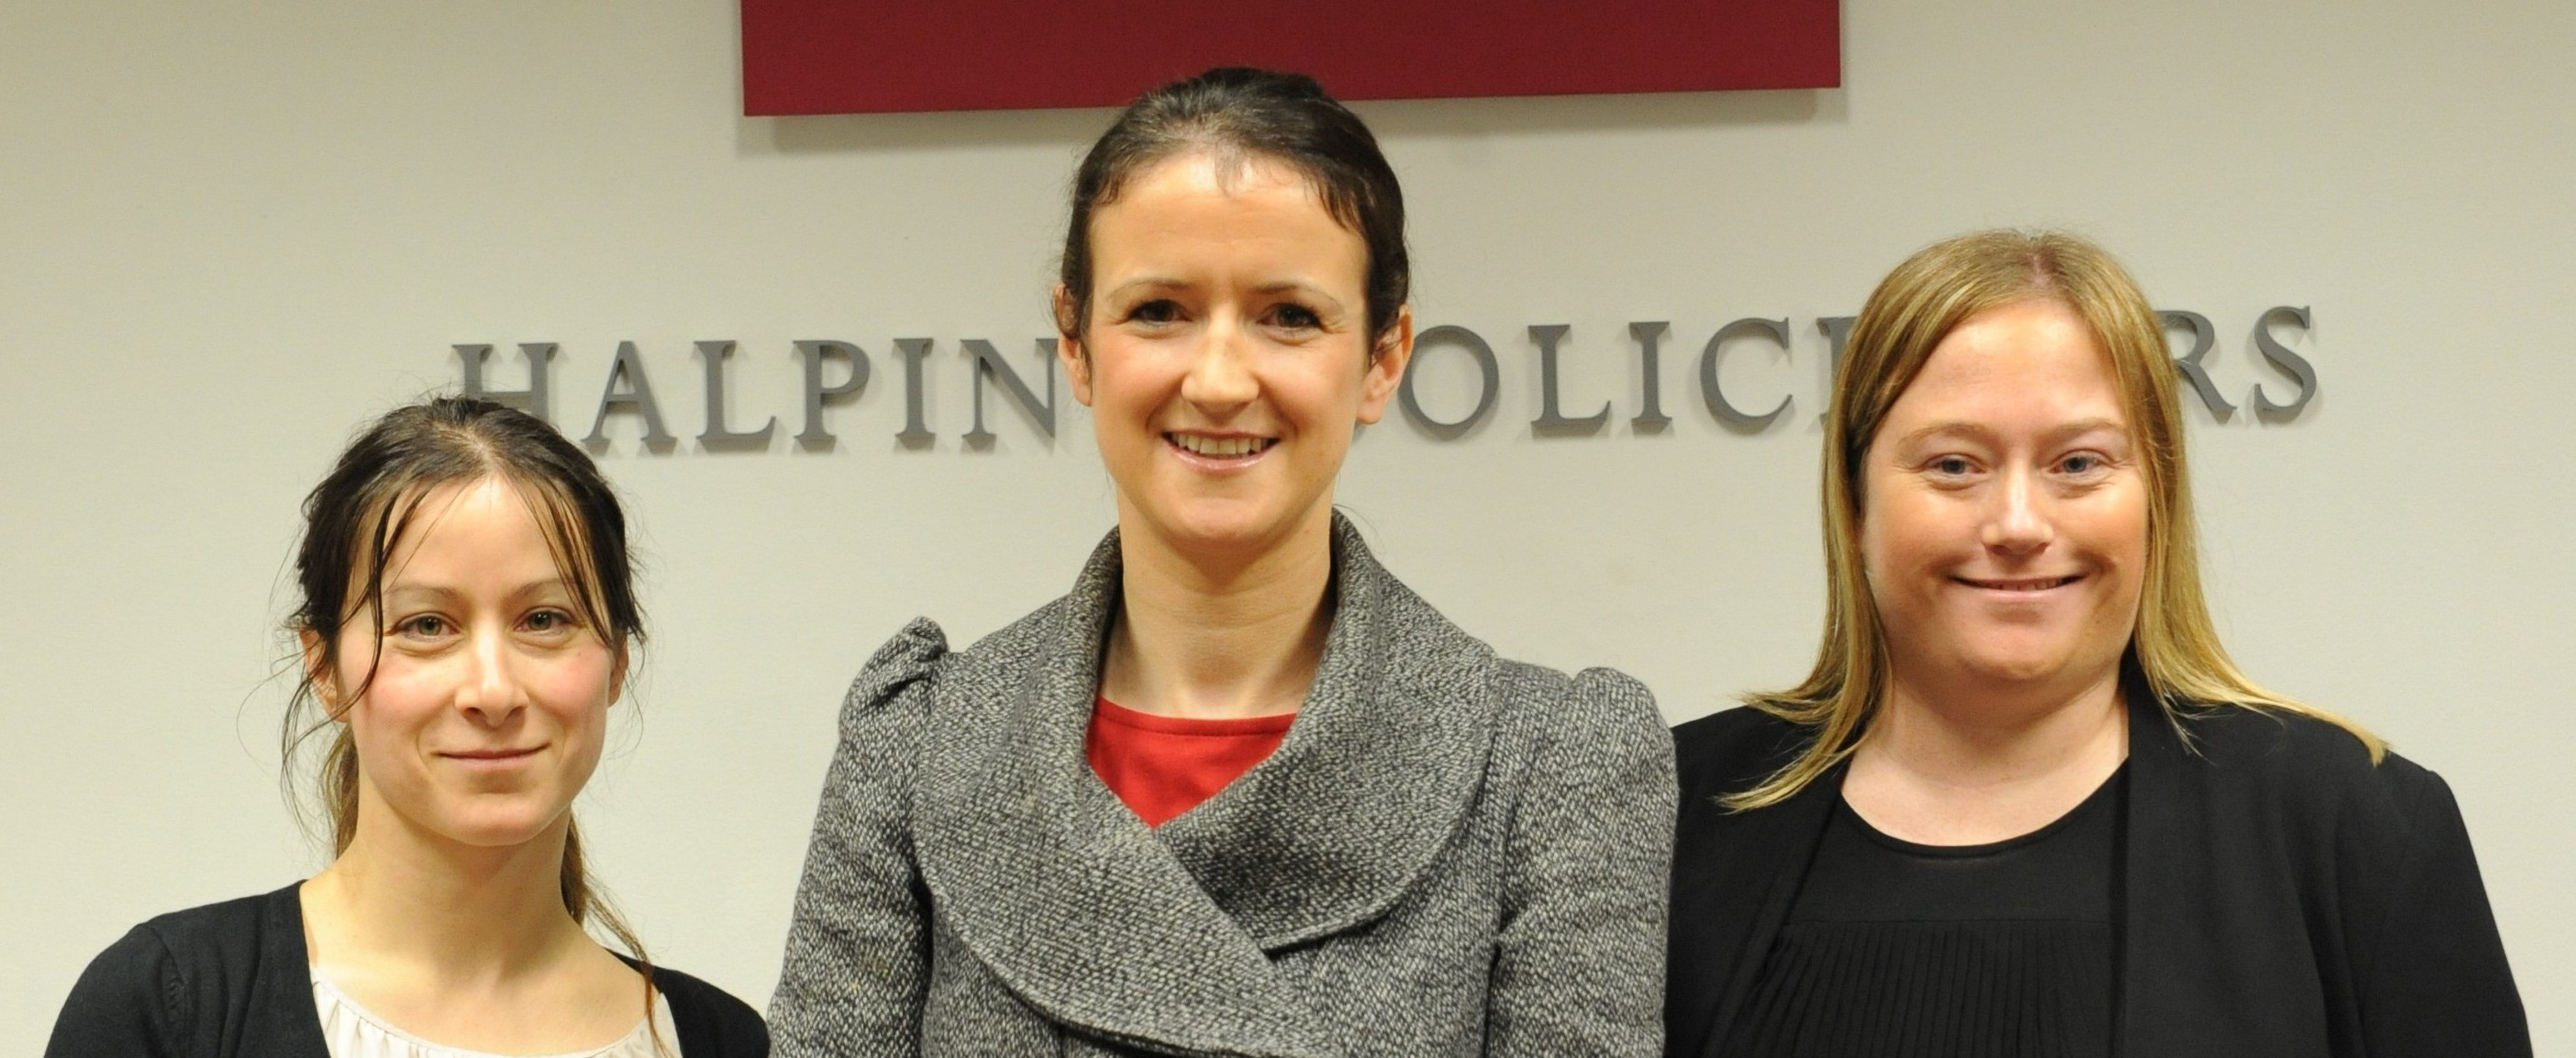 Halpin Solicitors Cork